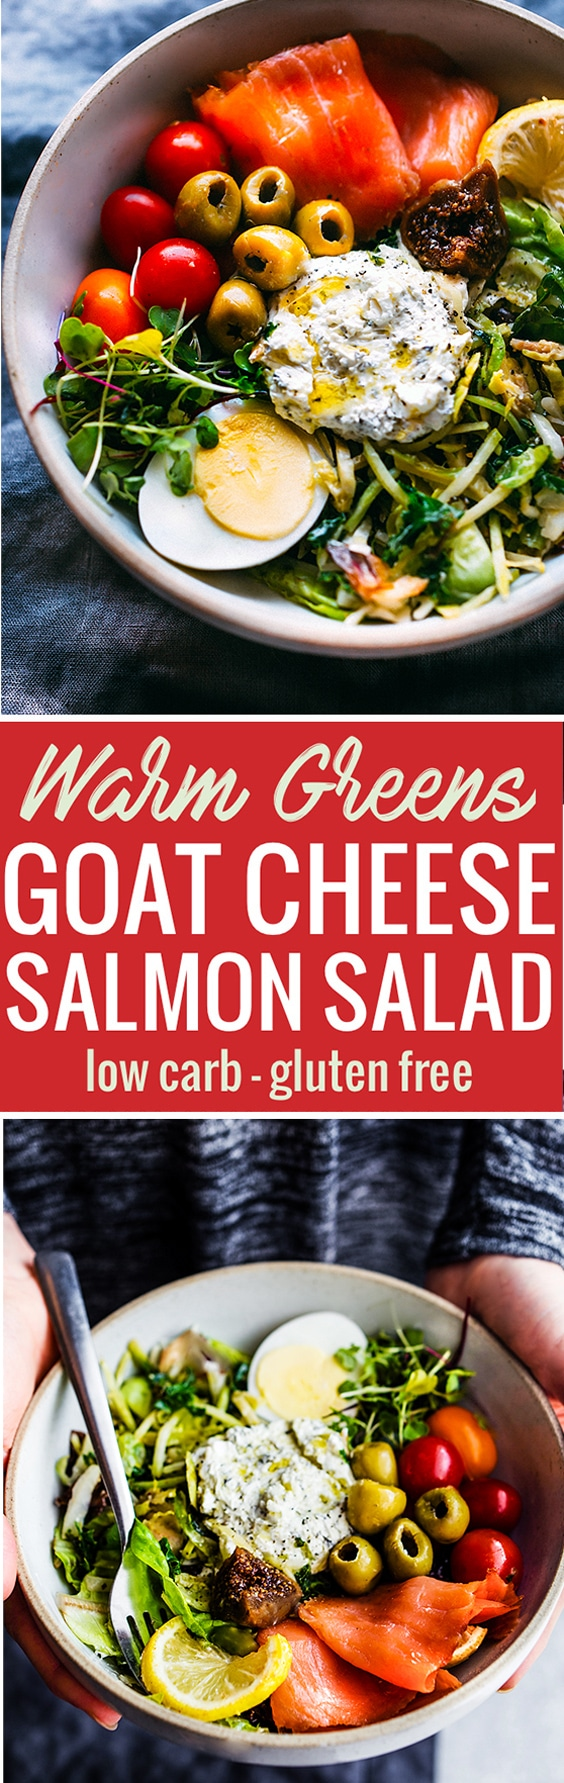 This Warm Greens Salad with Smoked Salmon and Goat cheese will satisfy your tastebuds and nourish your Body! A low carb warm greens salad packed full of healthy fats and protein. Whipped Goat cheese to top! Simple, gluten free, healthy, and so delicious! www.cottercrunch.com @cottercrunch